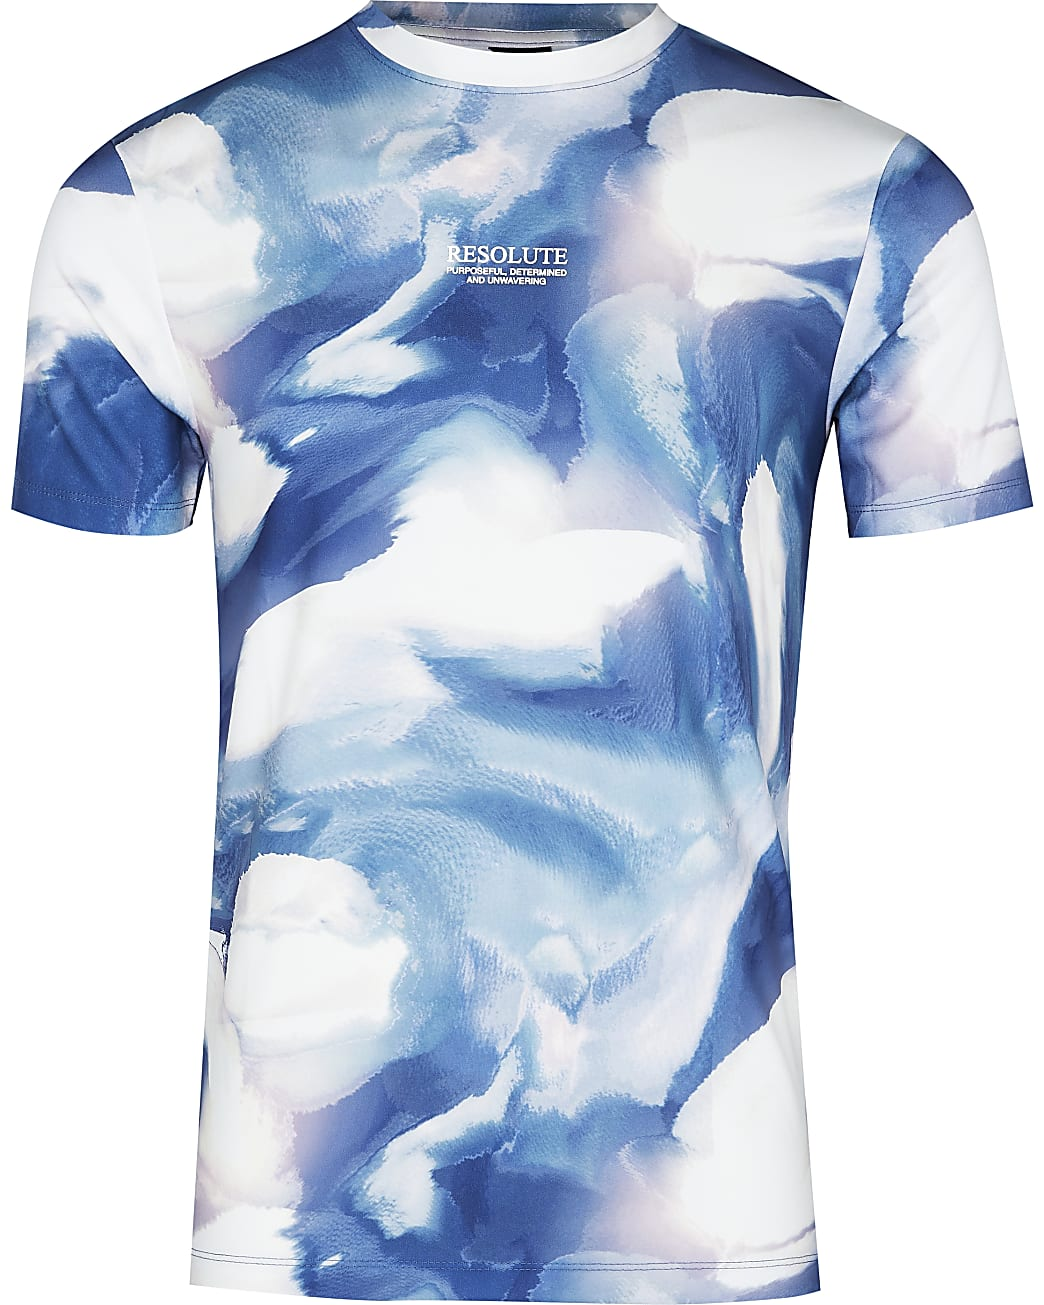 Blue abstract print muscle fit t-shirt